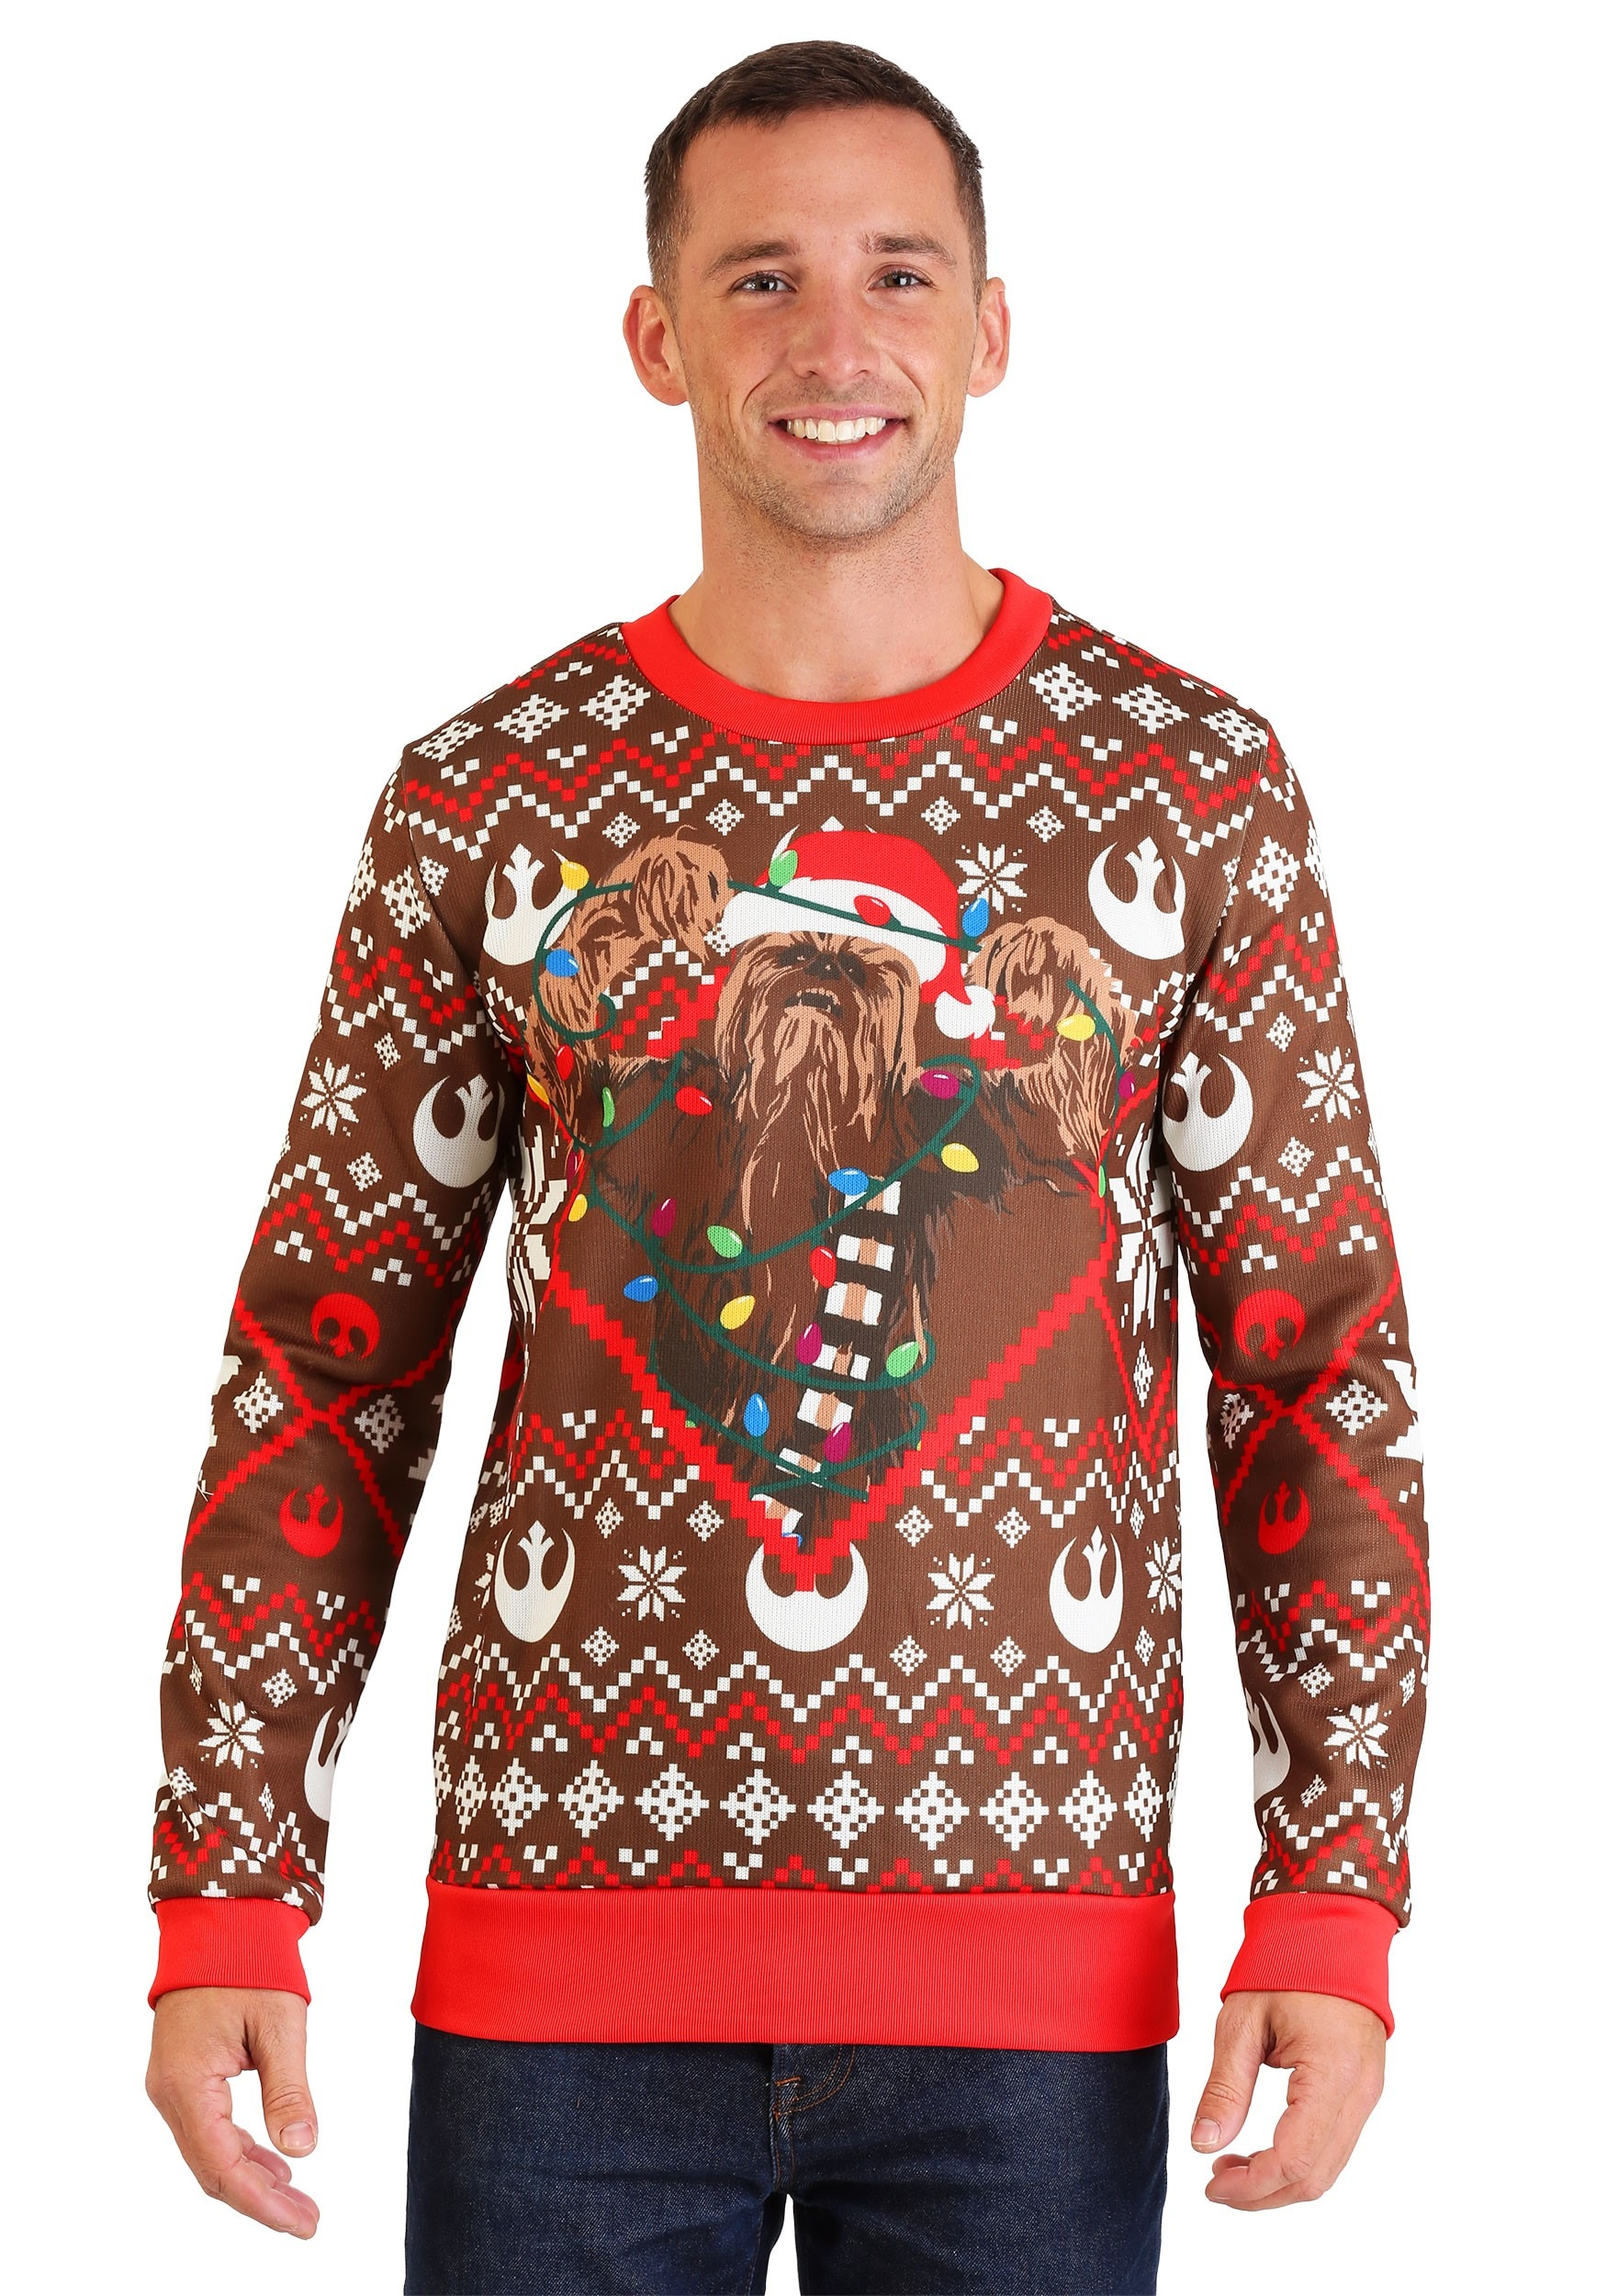 Adult Star Wars Chewbacca Lights Brown/Red Ugly Christmas Sweater